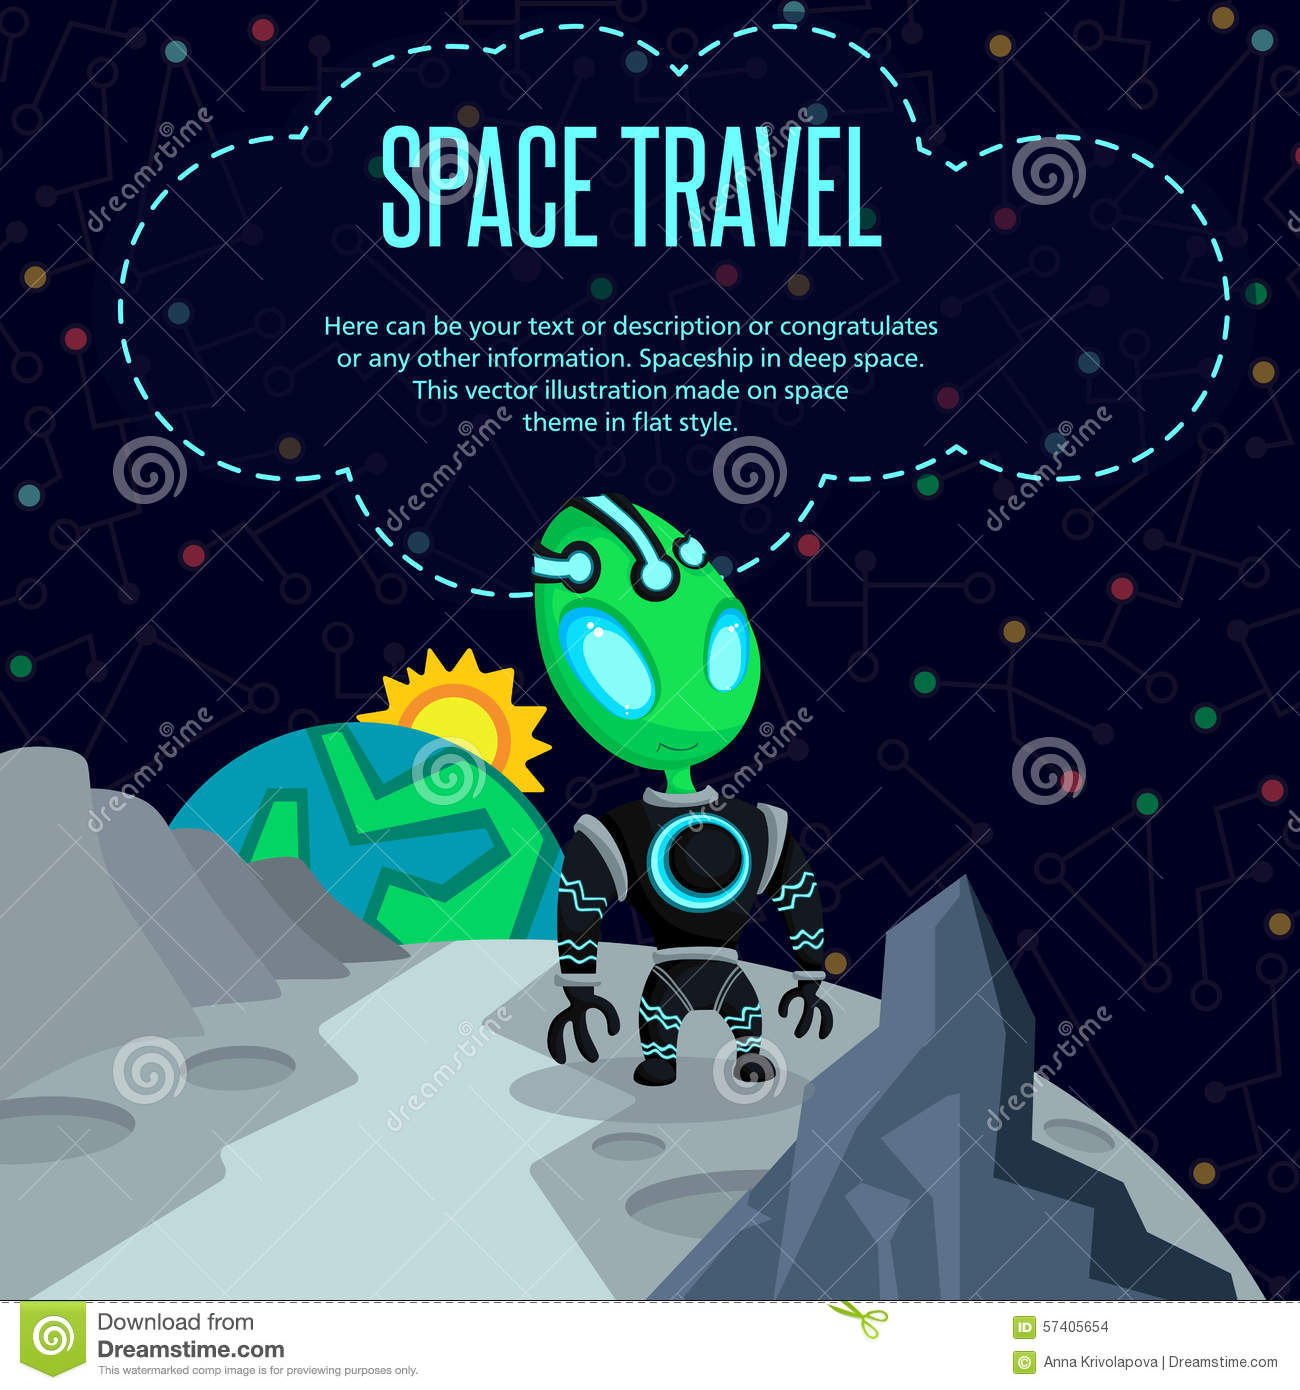 Space travel vector illustration in style flat stock for Outer space travel